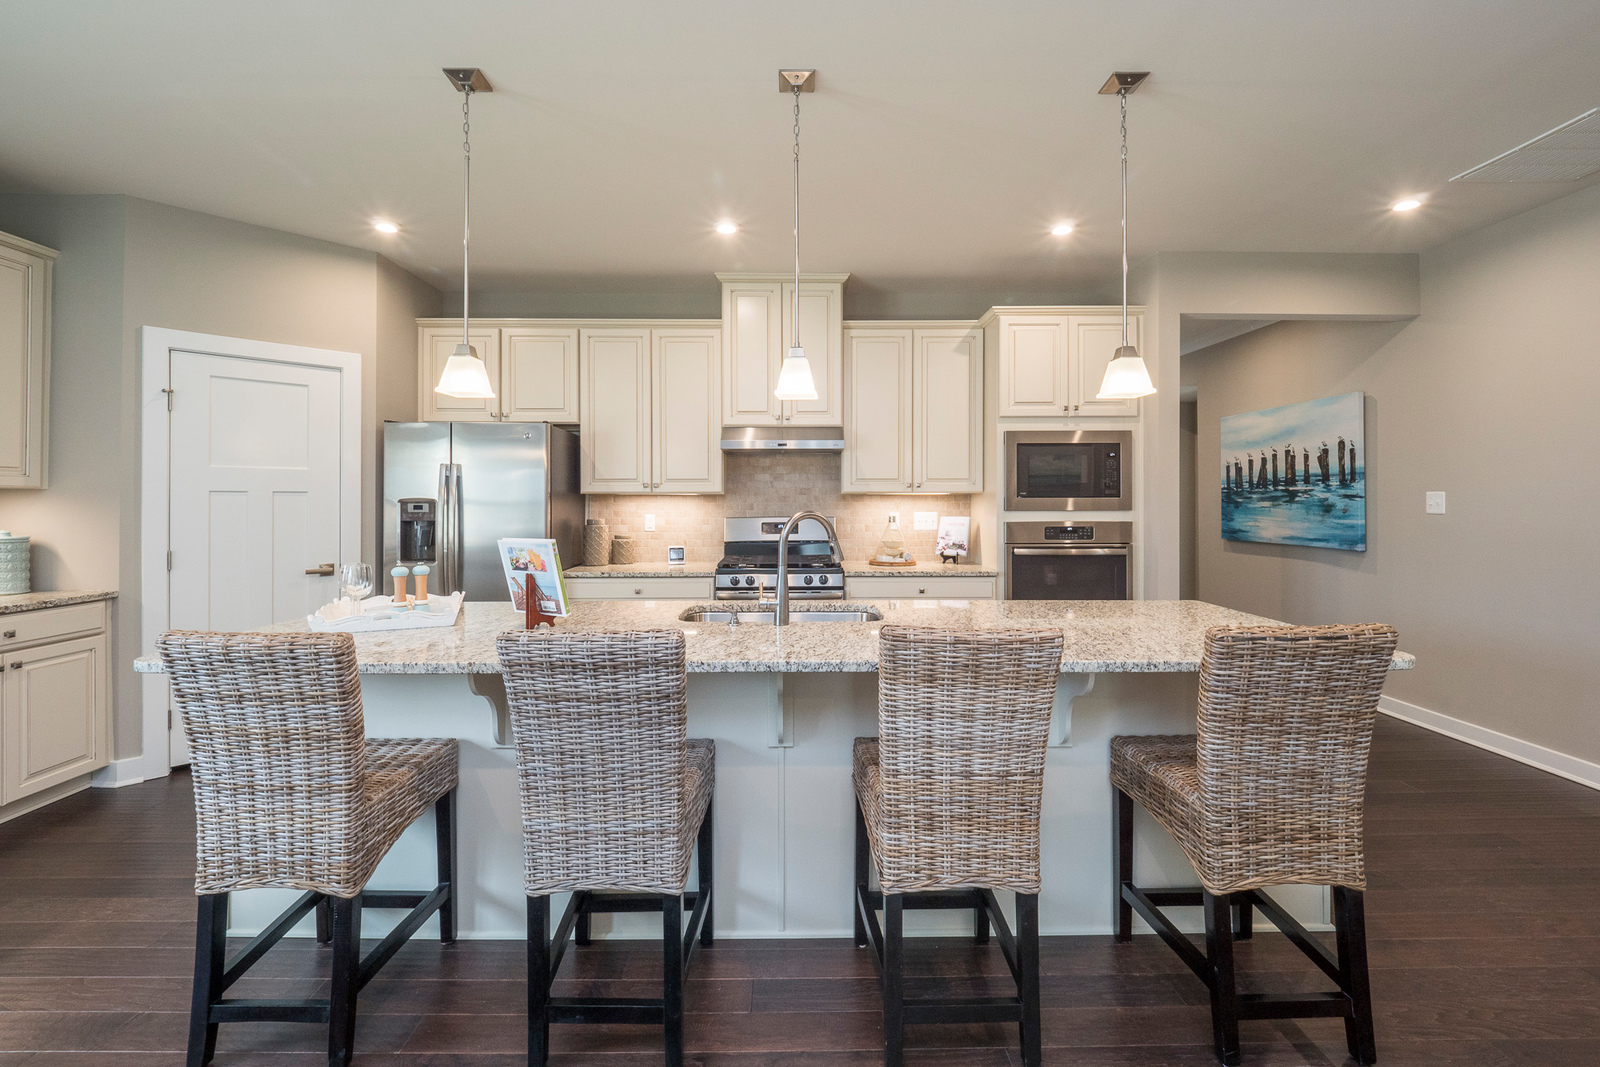 Your dream kitchen creates the perfect recipe for entertaining family and friends in comfort and style.